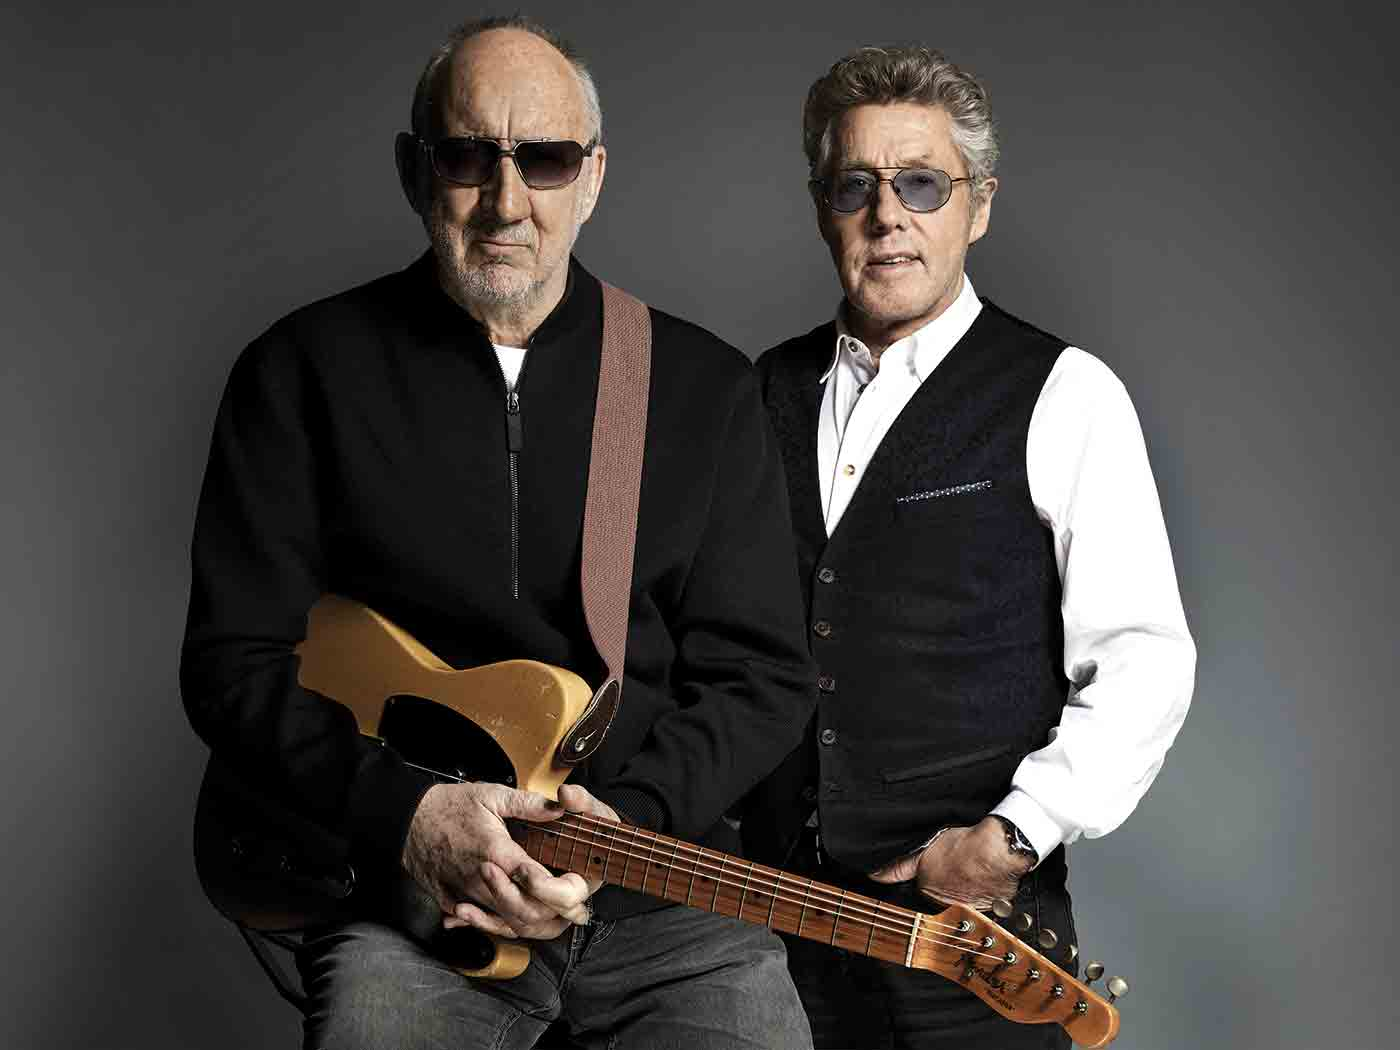 The Who announce intimate show at Kingston Pryzm - UNCUT